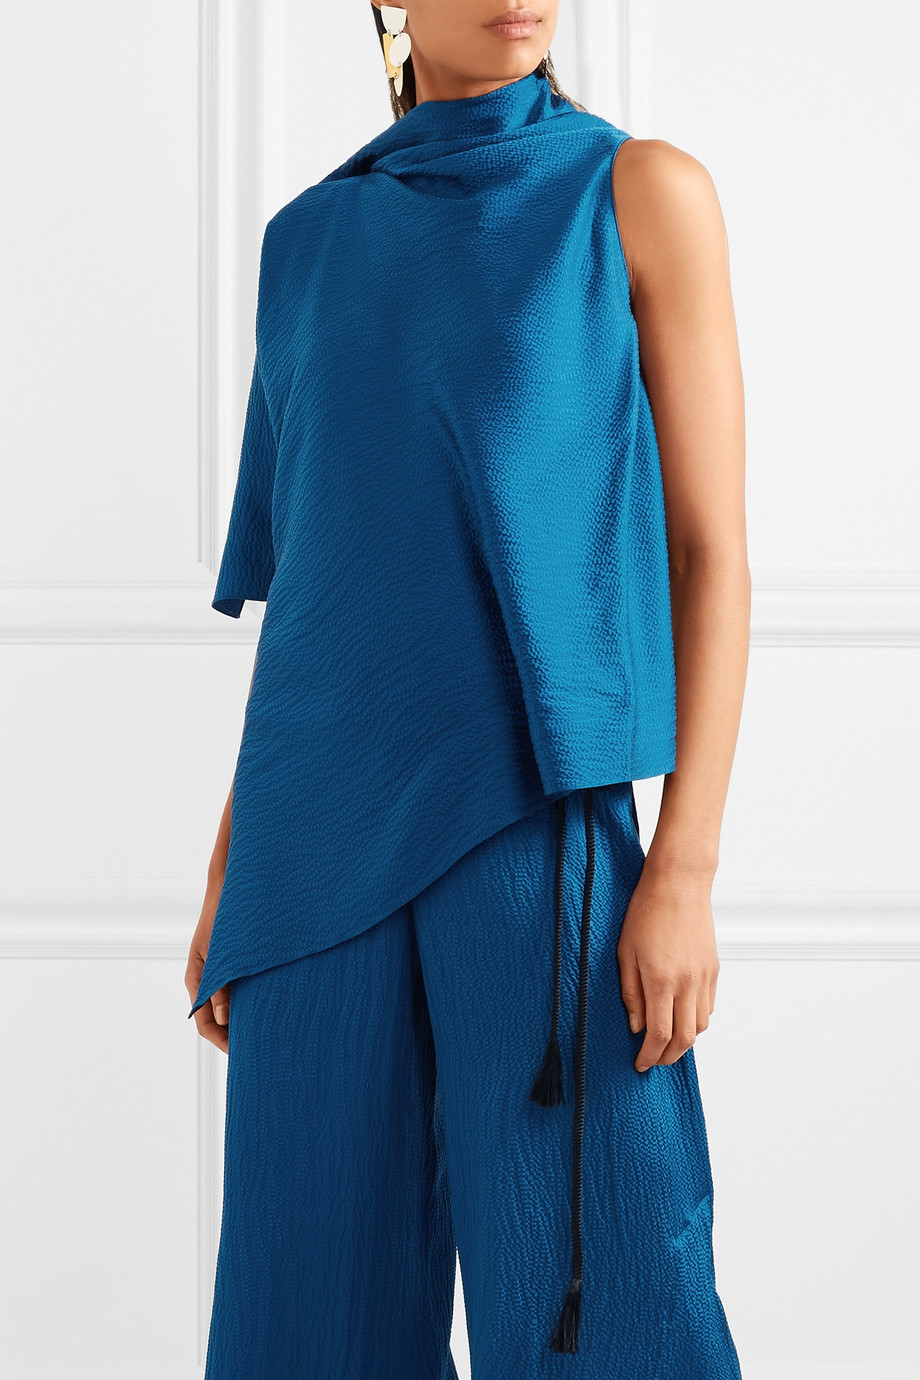 Satin blouse Roland Mouret buy Satin blouse Roland Mouret internet shop